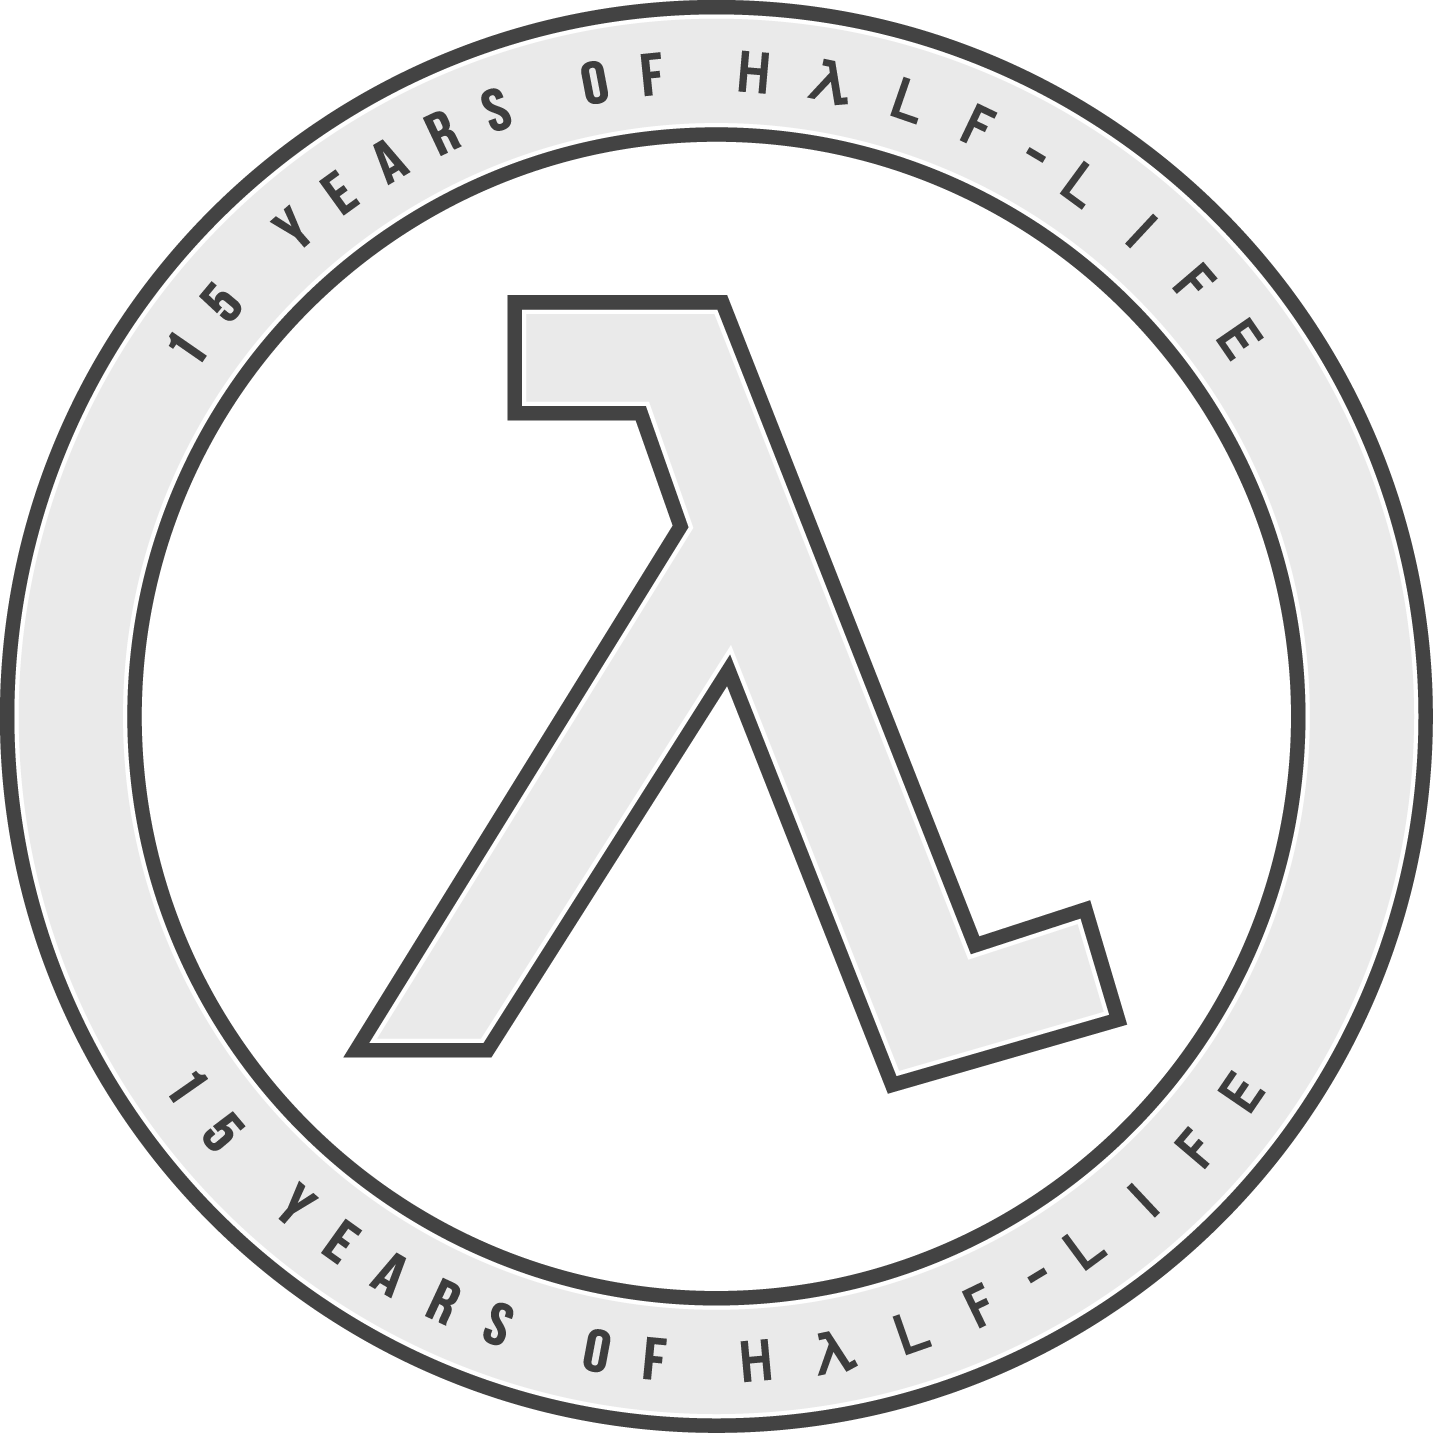 15 Years of Half-Life Logo - Light